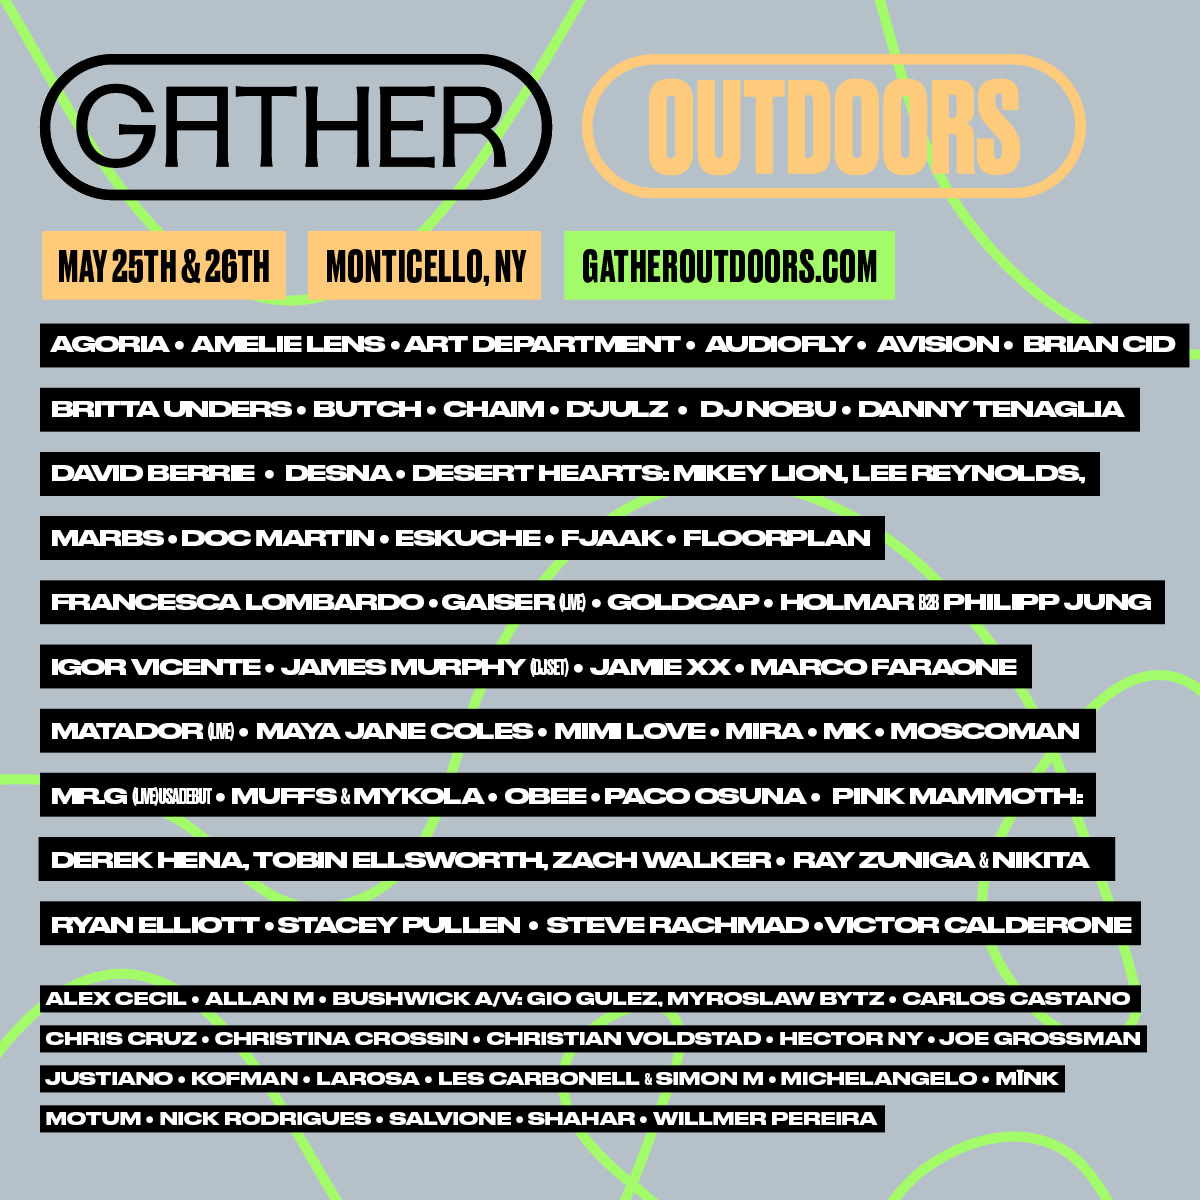 Gather Outdoors 2019 - Artist Lineup (May 25th & 26th in Monticello, NY)